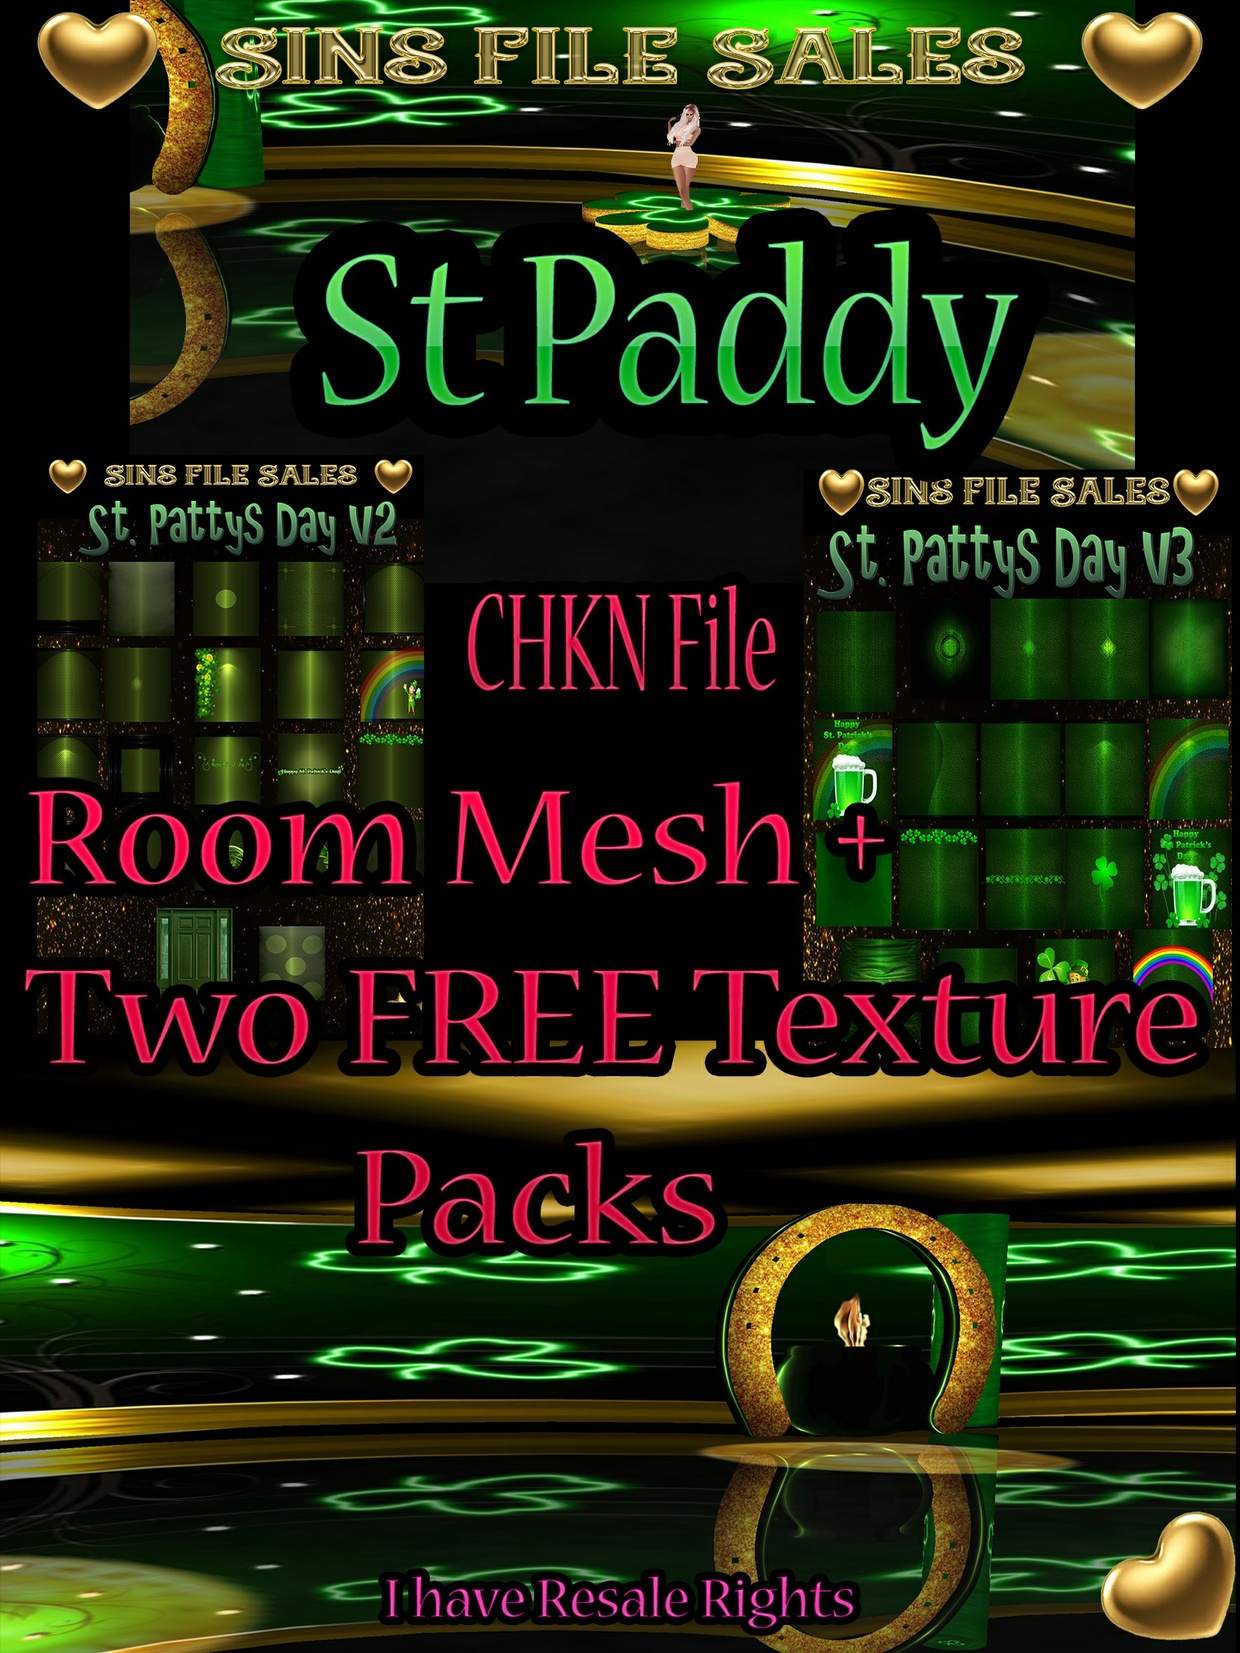 St Paddy Room Mesh + 2 FREE Texture Packs